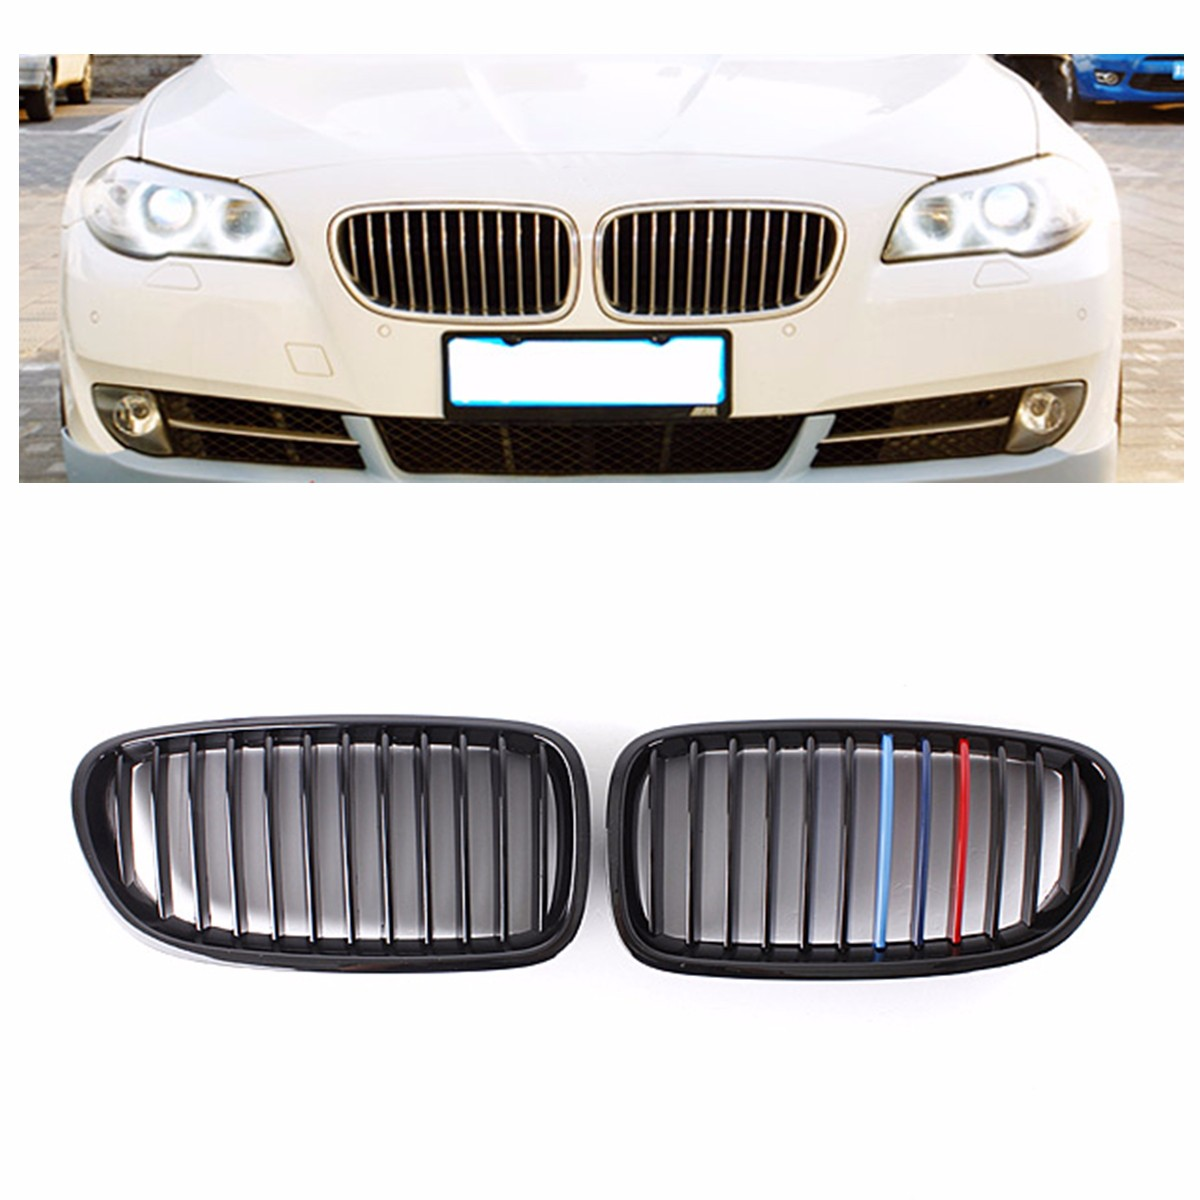 for BMW F10 F11 F18 M5 5 Series 2010 2011 2012 2013 Pair M Color Gloss Black Front Bumper Hood Grill Grille Brand Newfor BMW F10 F11 F18 M5 5 Series 2010 2011 2012 2013 Pair M Color Gloss Black Front Bumper Hood Grill Grille Brand New